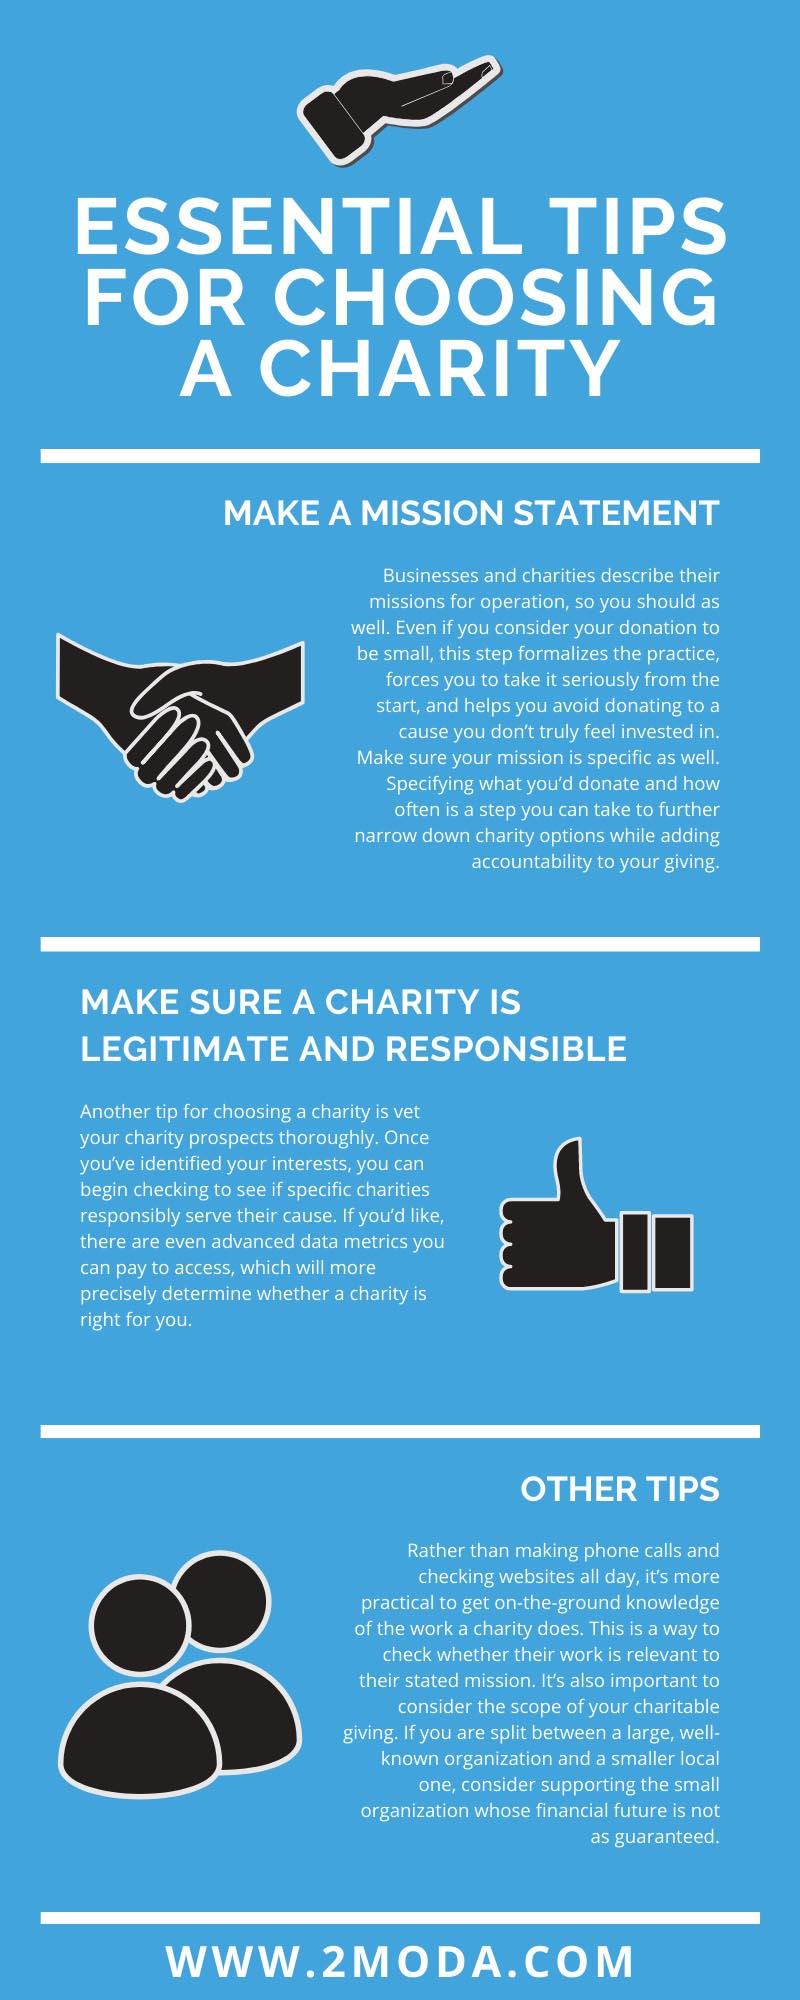 Essential Tips for Choosing a Charity